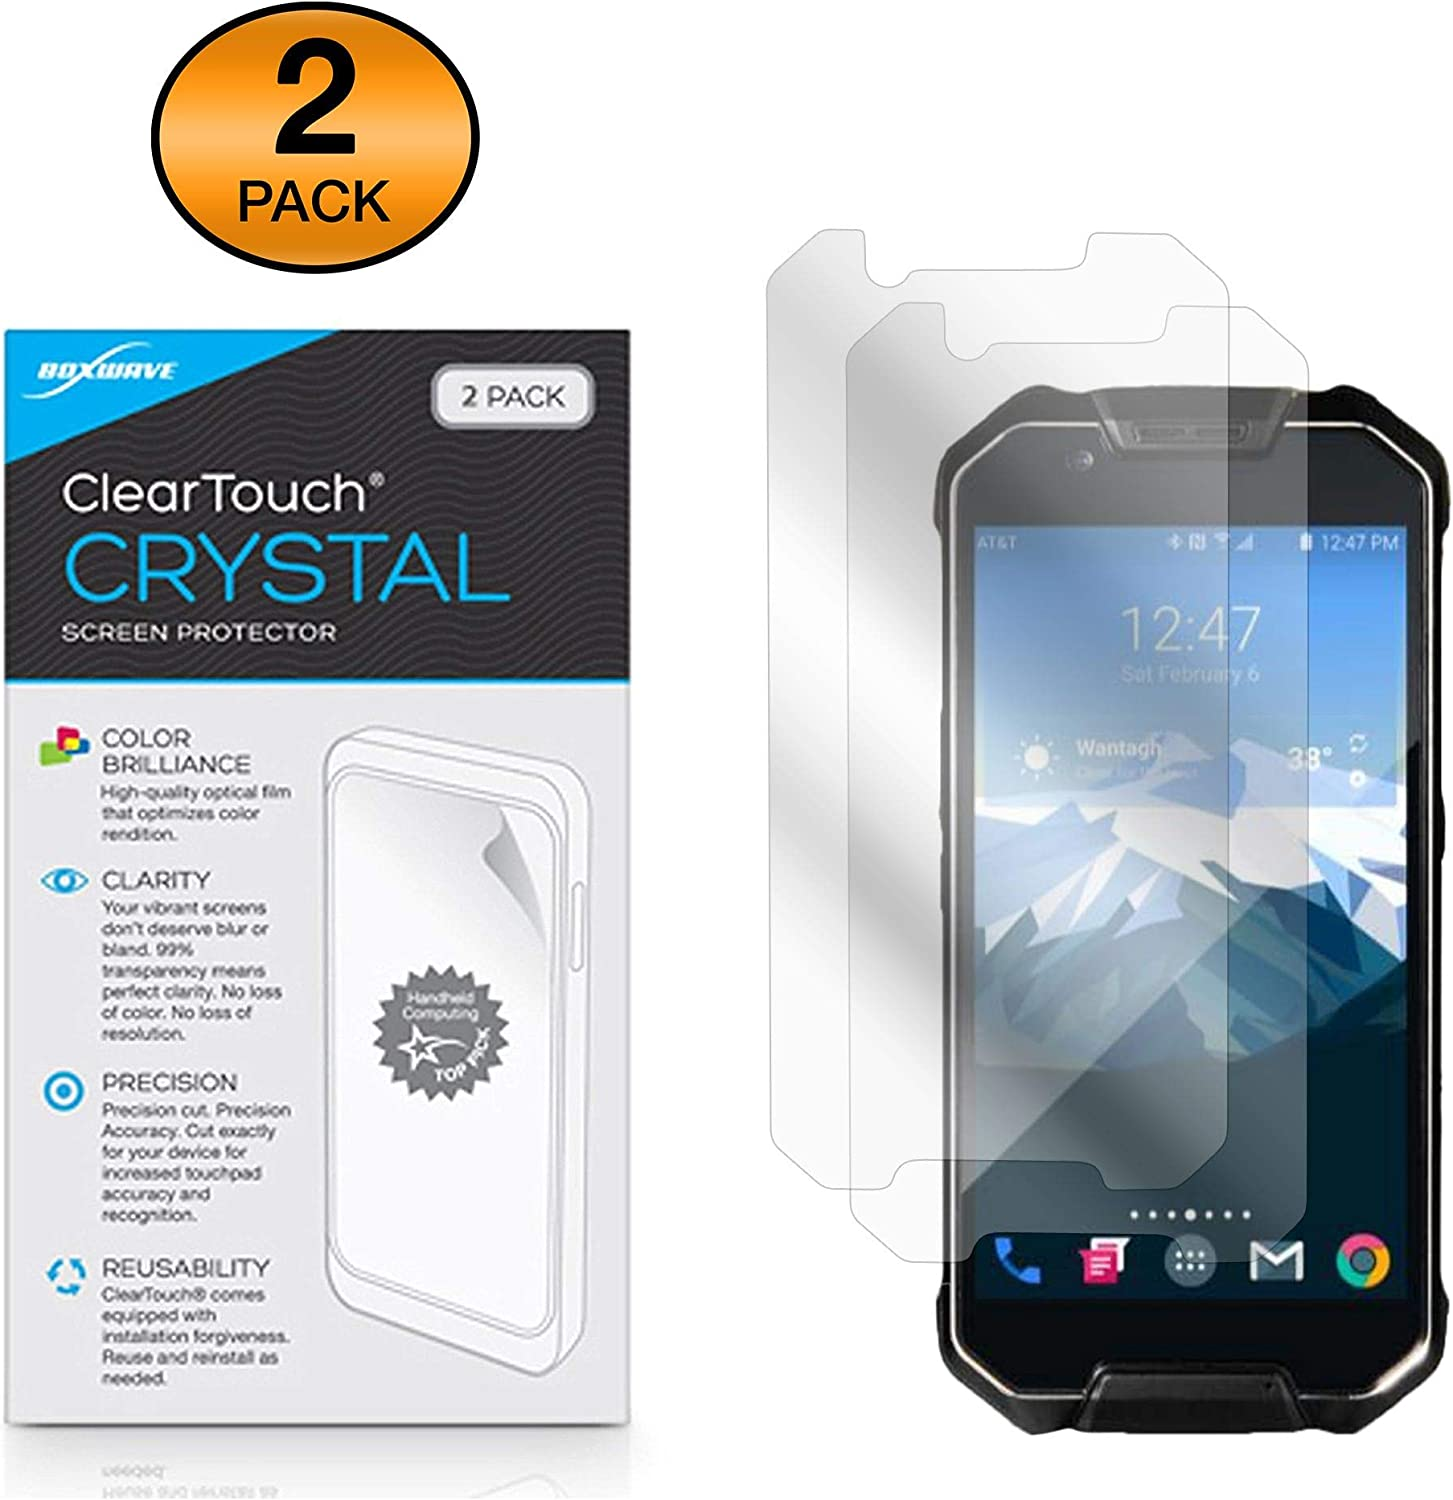 Shields from Scratches for Cedar CP3 BoxWave ClearTouch Crystal HD Film Skin 2-Pack Cedar CP3 Screen Protector